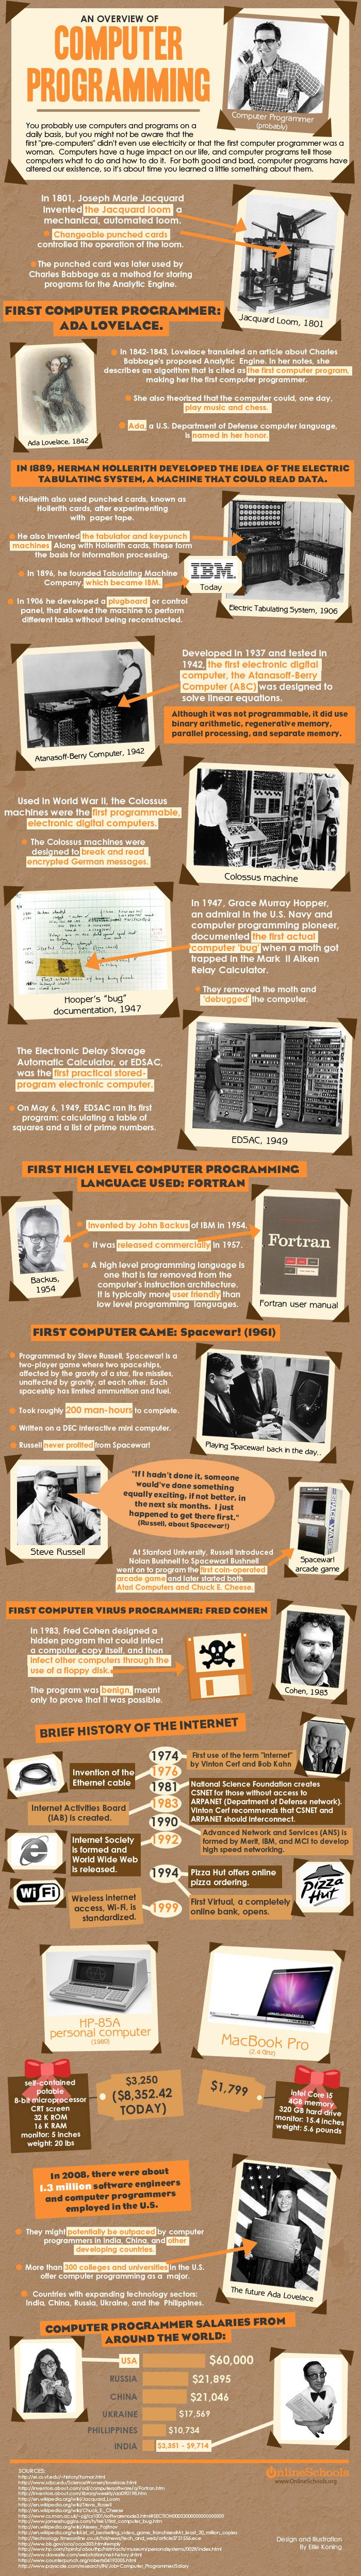 An Overview Of Computer Programming U2013 Infographic